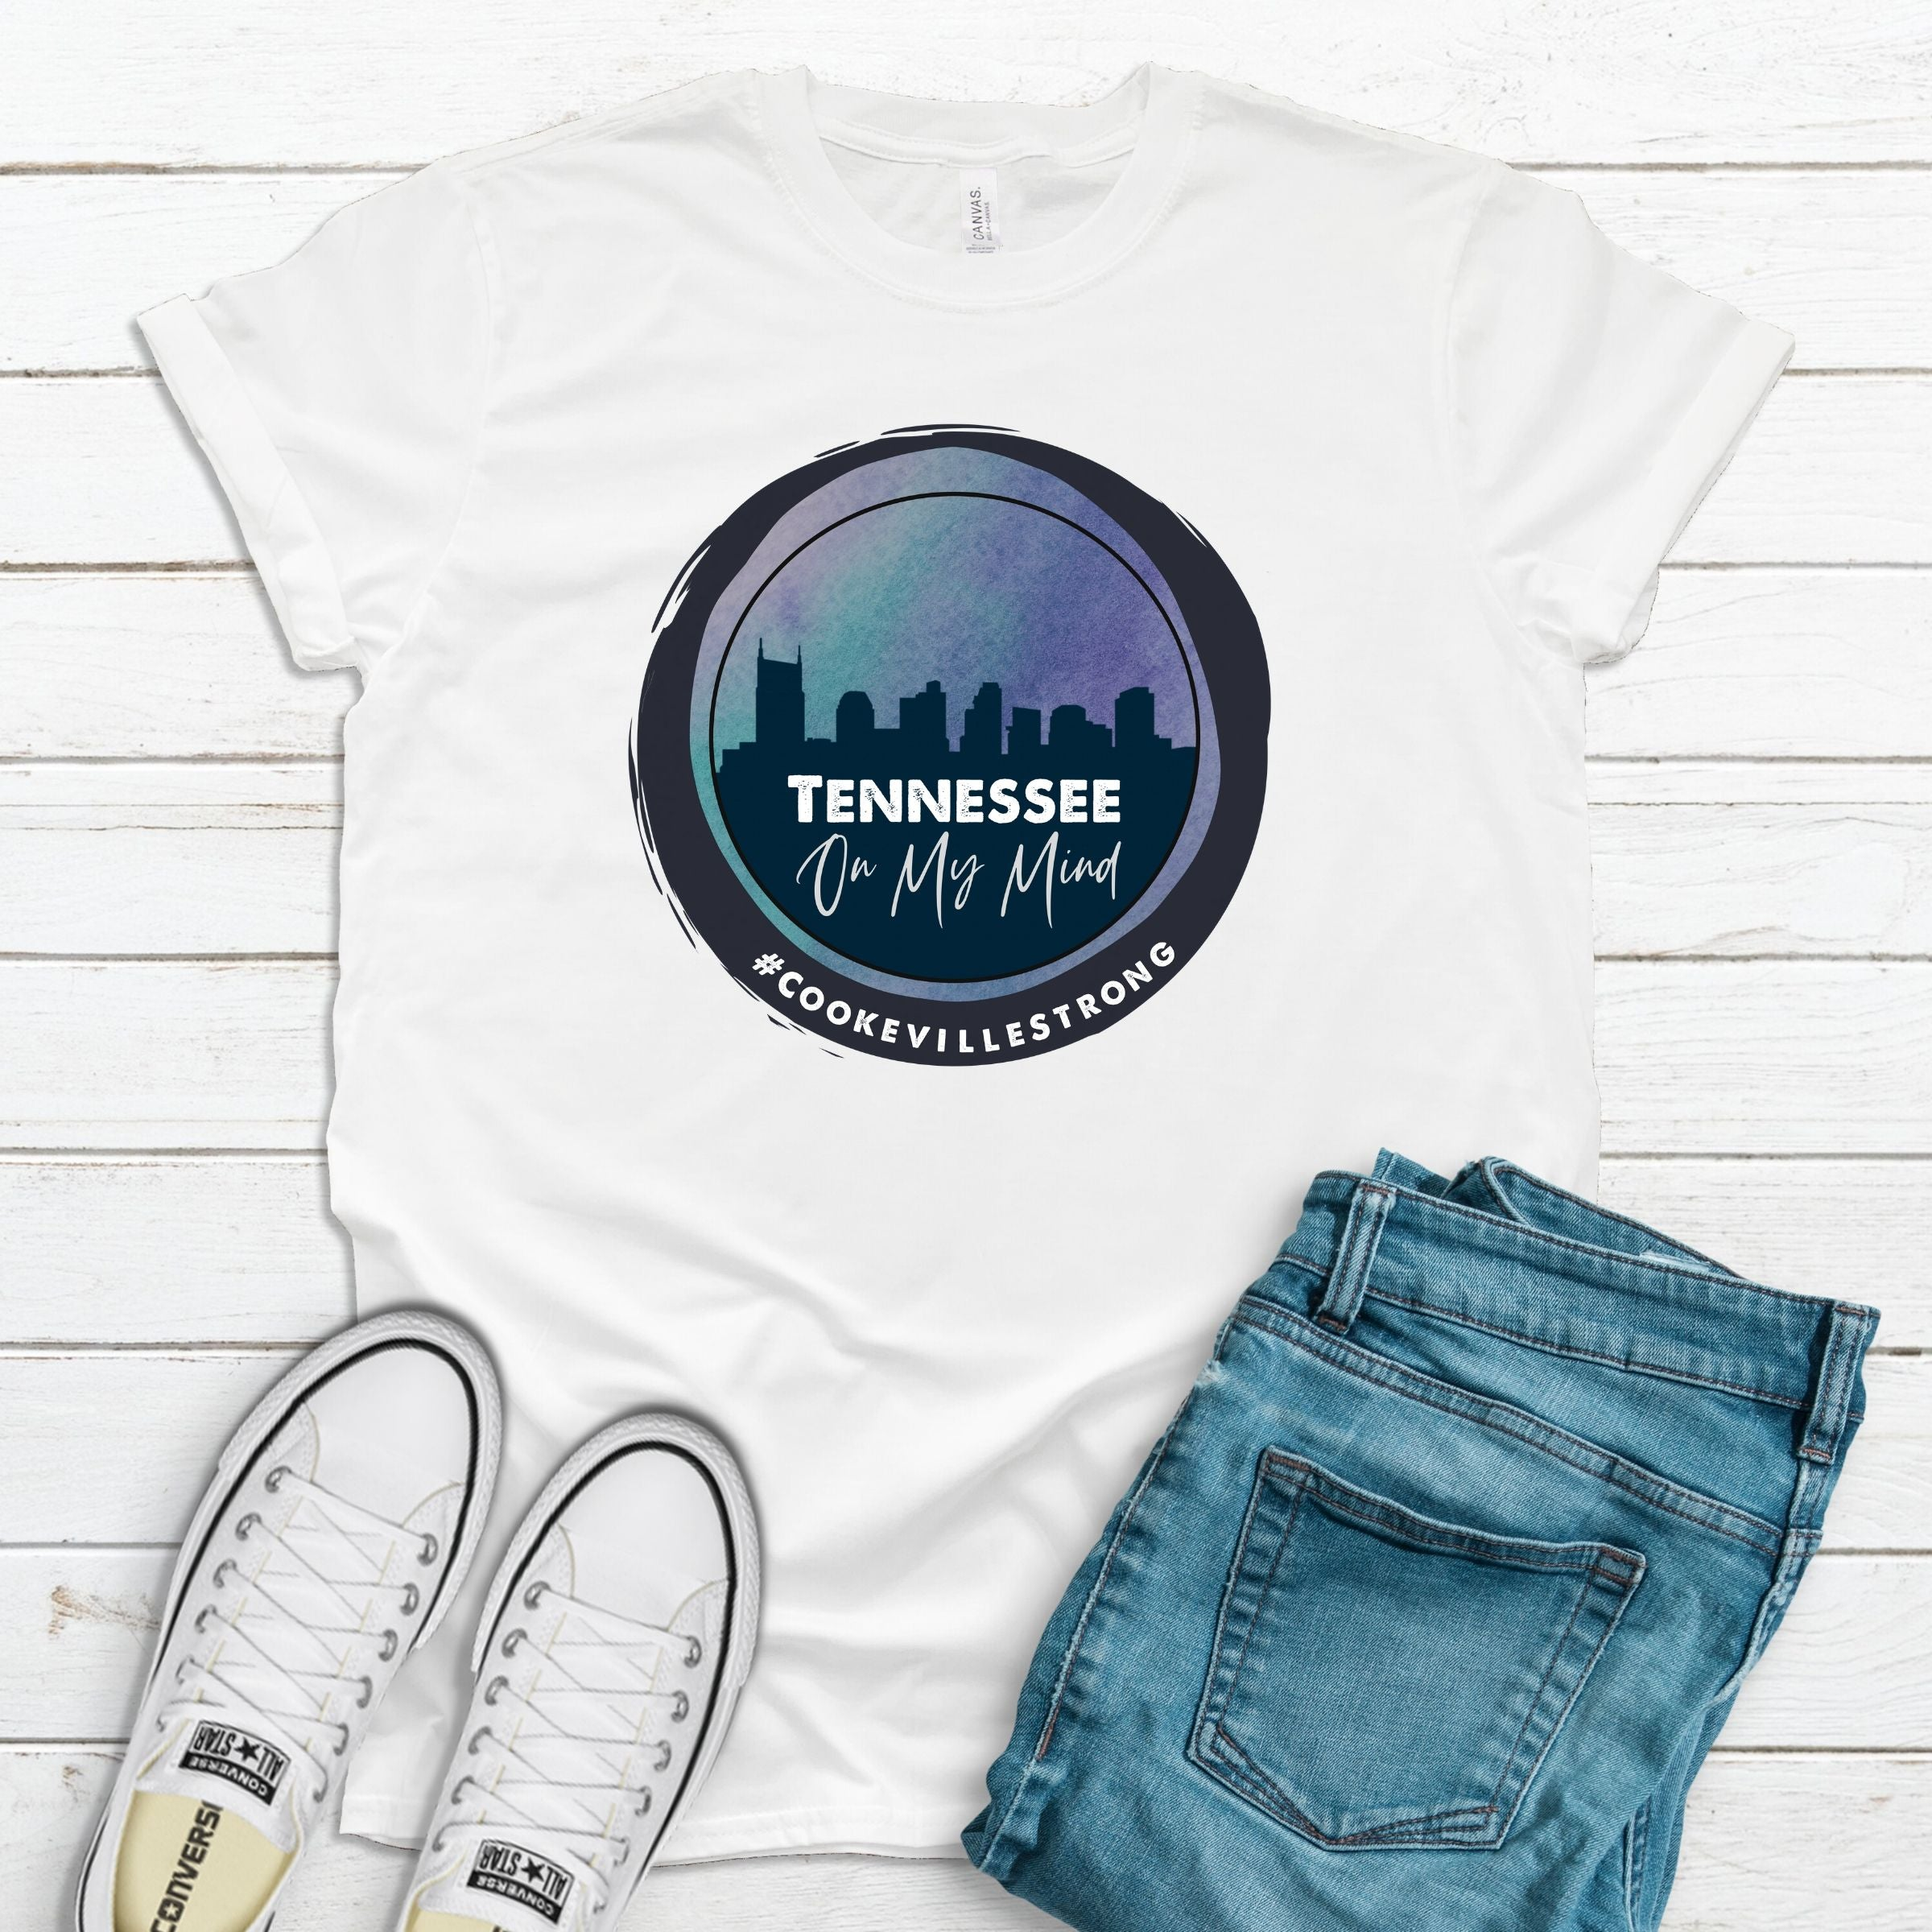 WHOLESALE :: #CookevilleStrong Fundraiser Shirt-Shop-Wholesale-Womens-Boutique-Custom-Graphic-Tees-Branding-Gifts